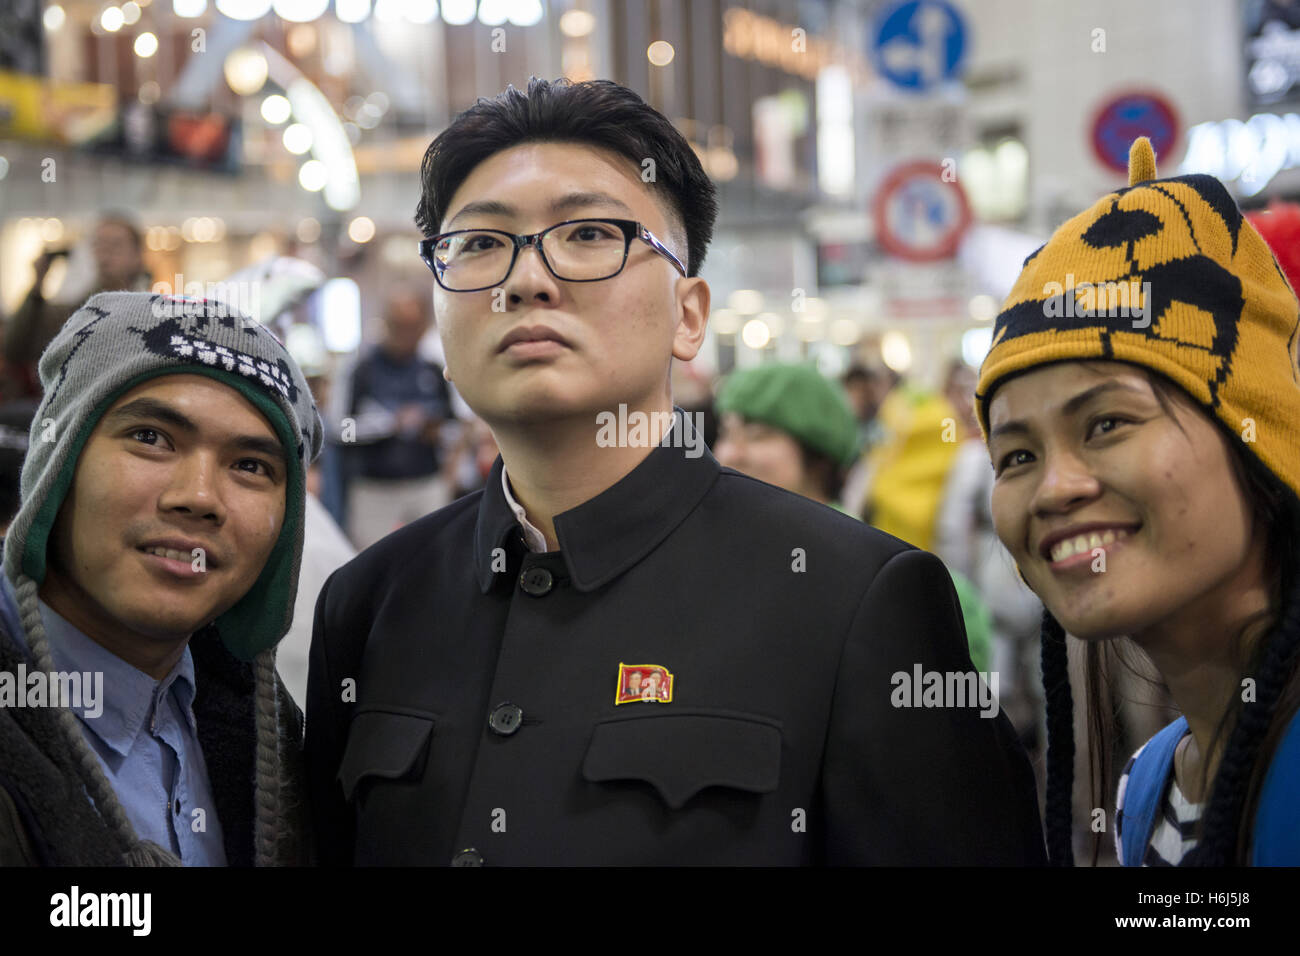 Tokyo, Japan. 29th Oct, 2016. The double of Kim Jong-un during Halloween at Tokyo's Shibuya famous scramble - Stock Image